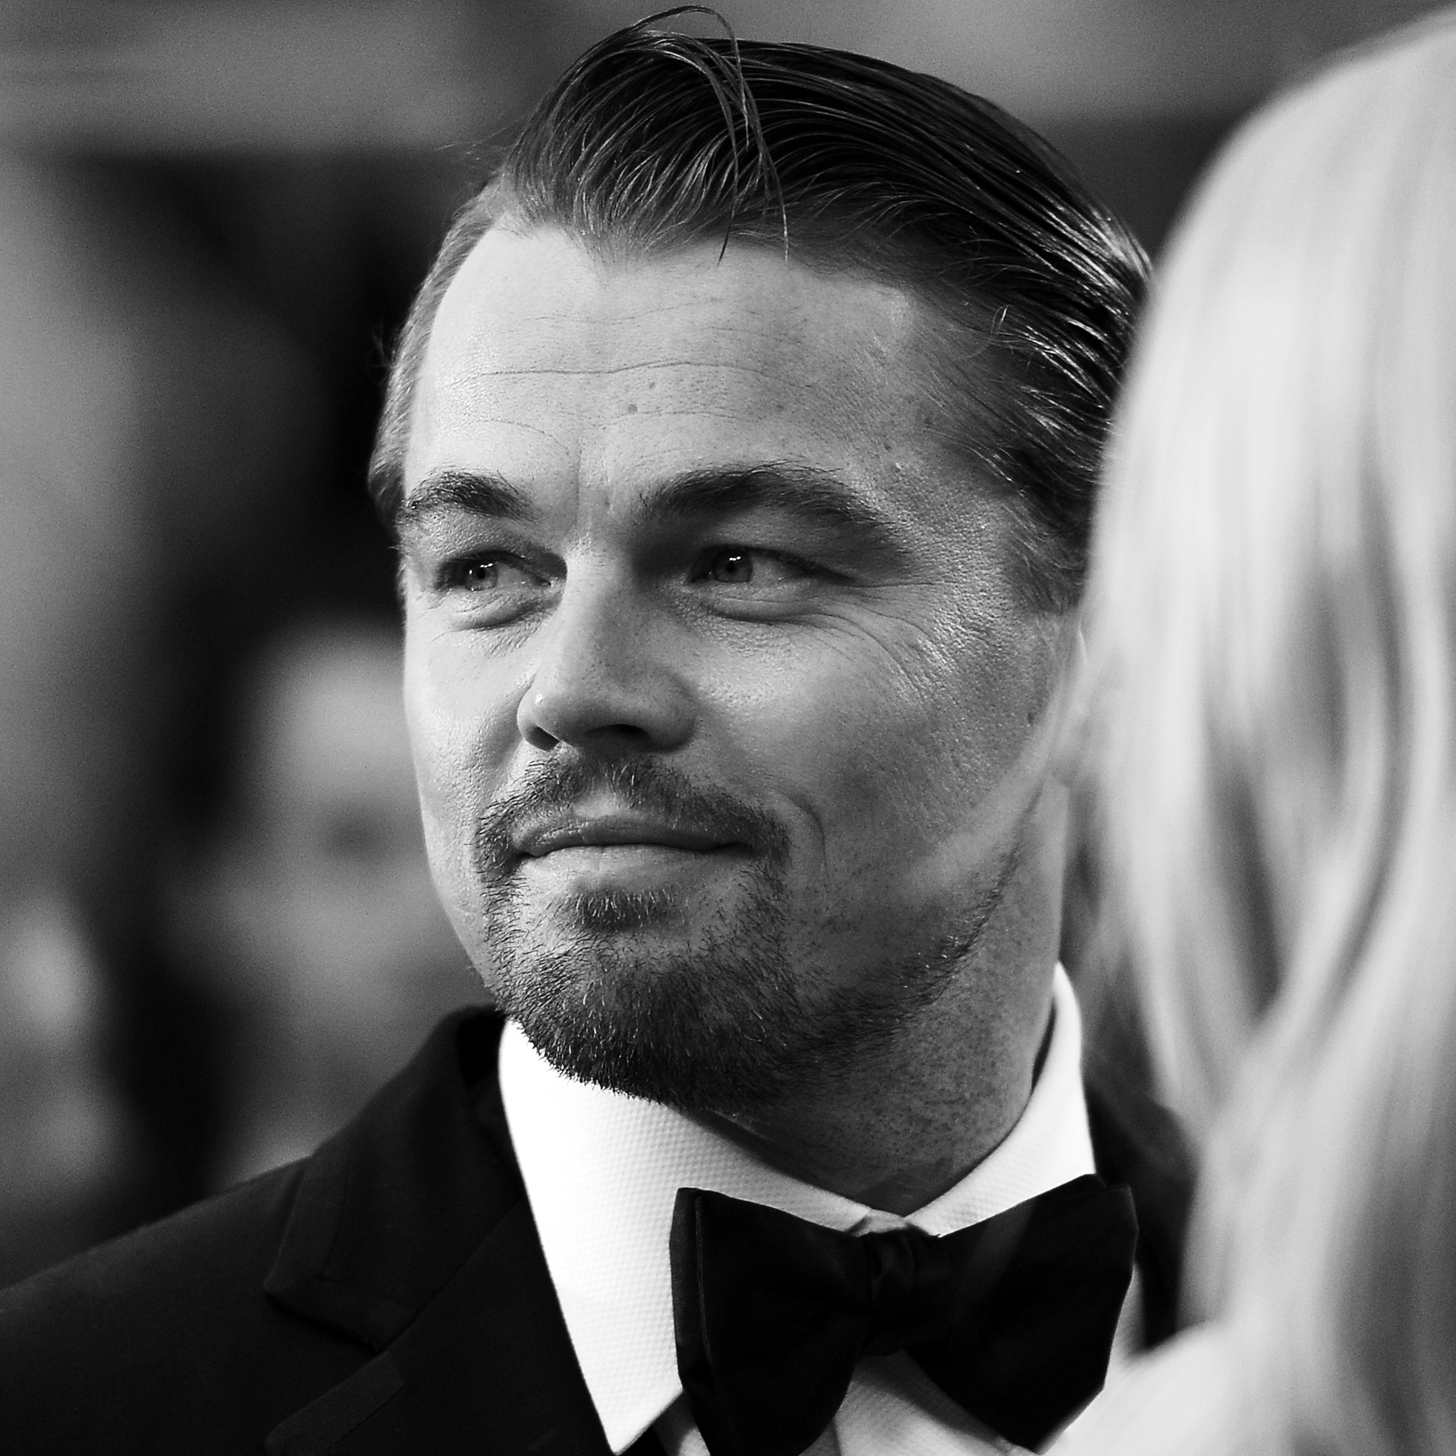 Black and White Leonardo DiCaprio Photo